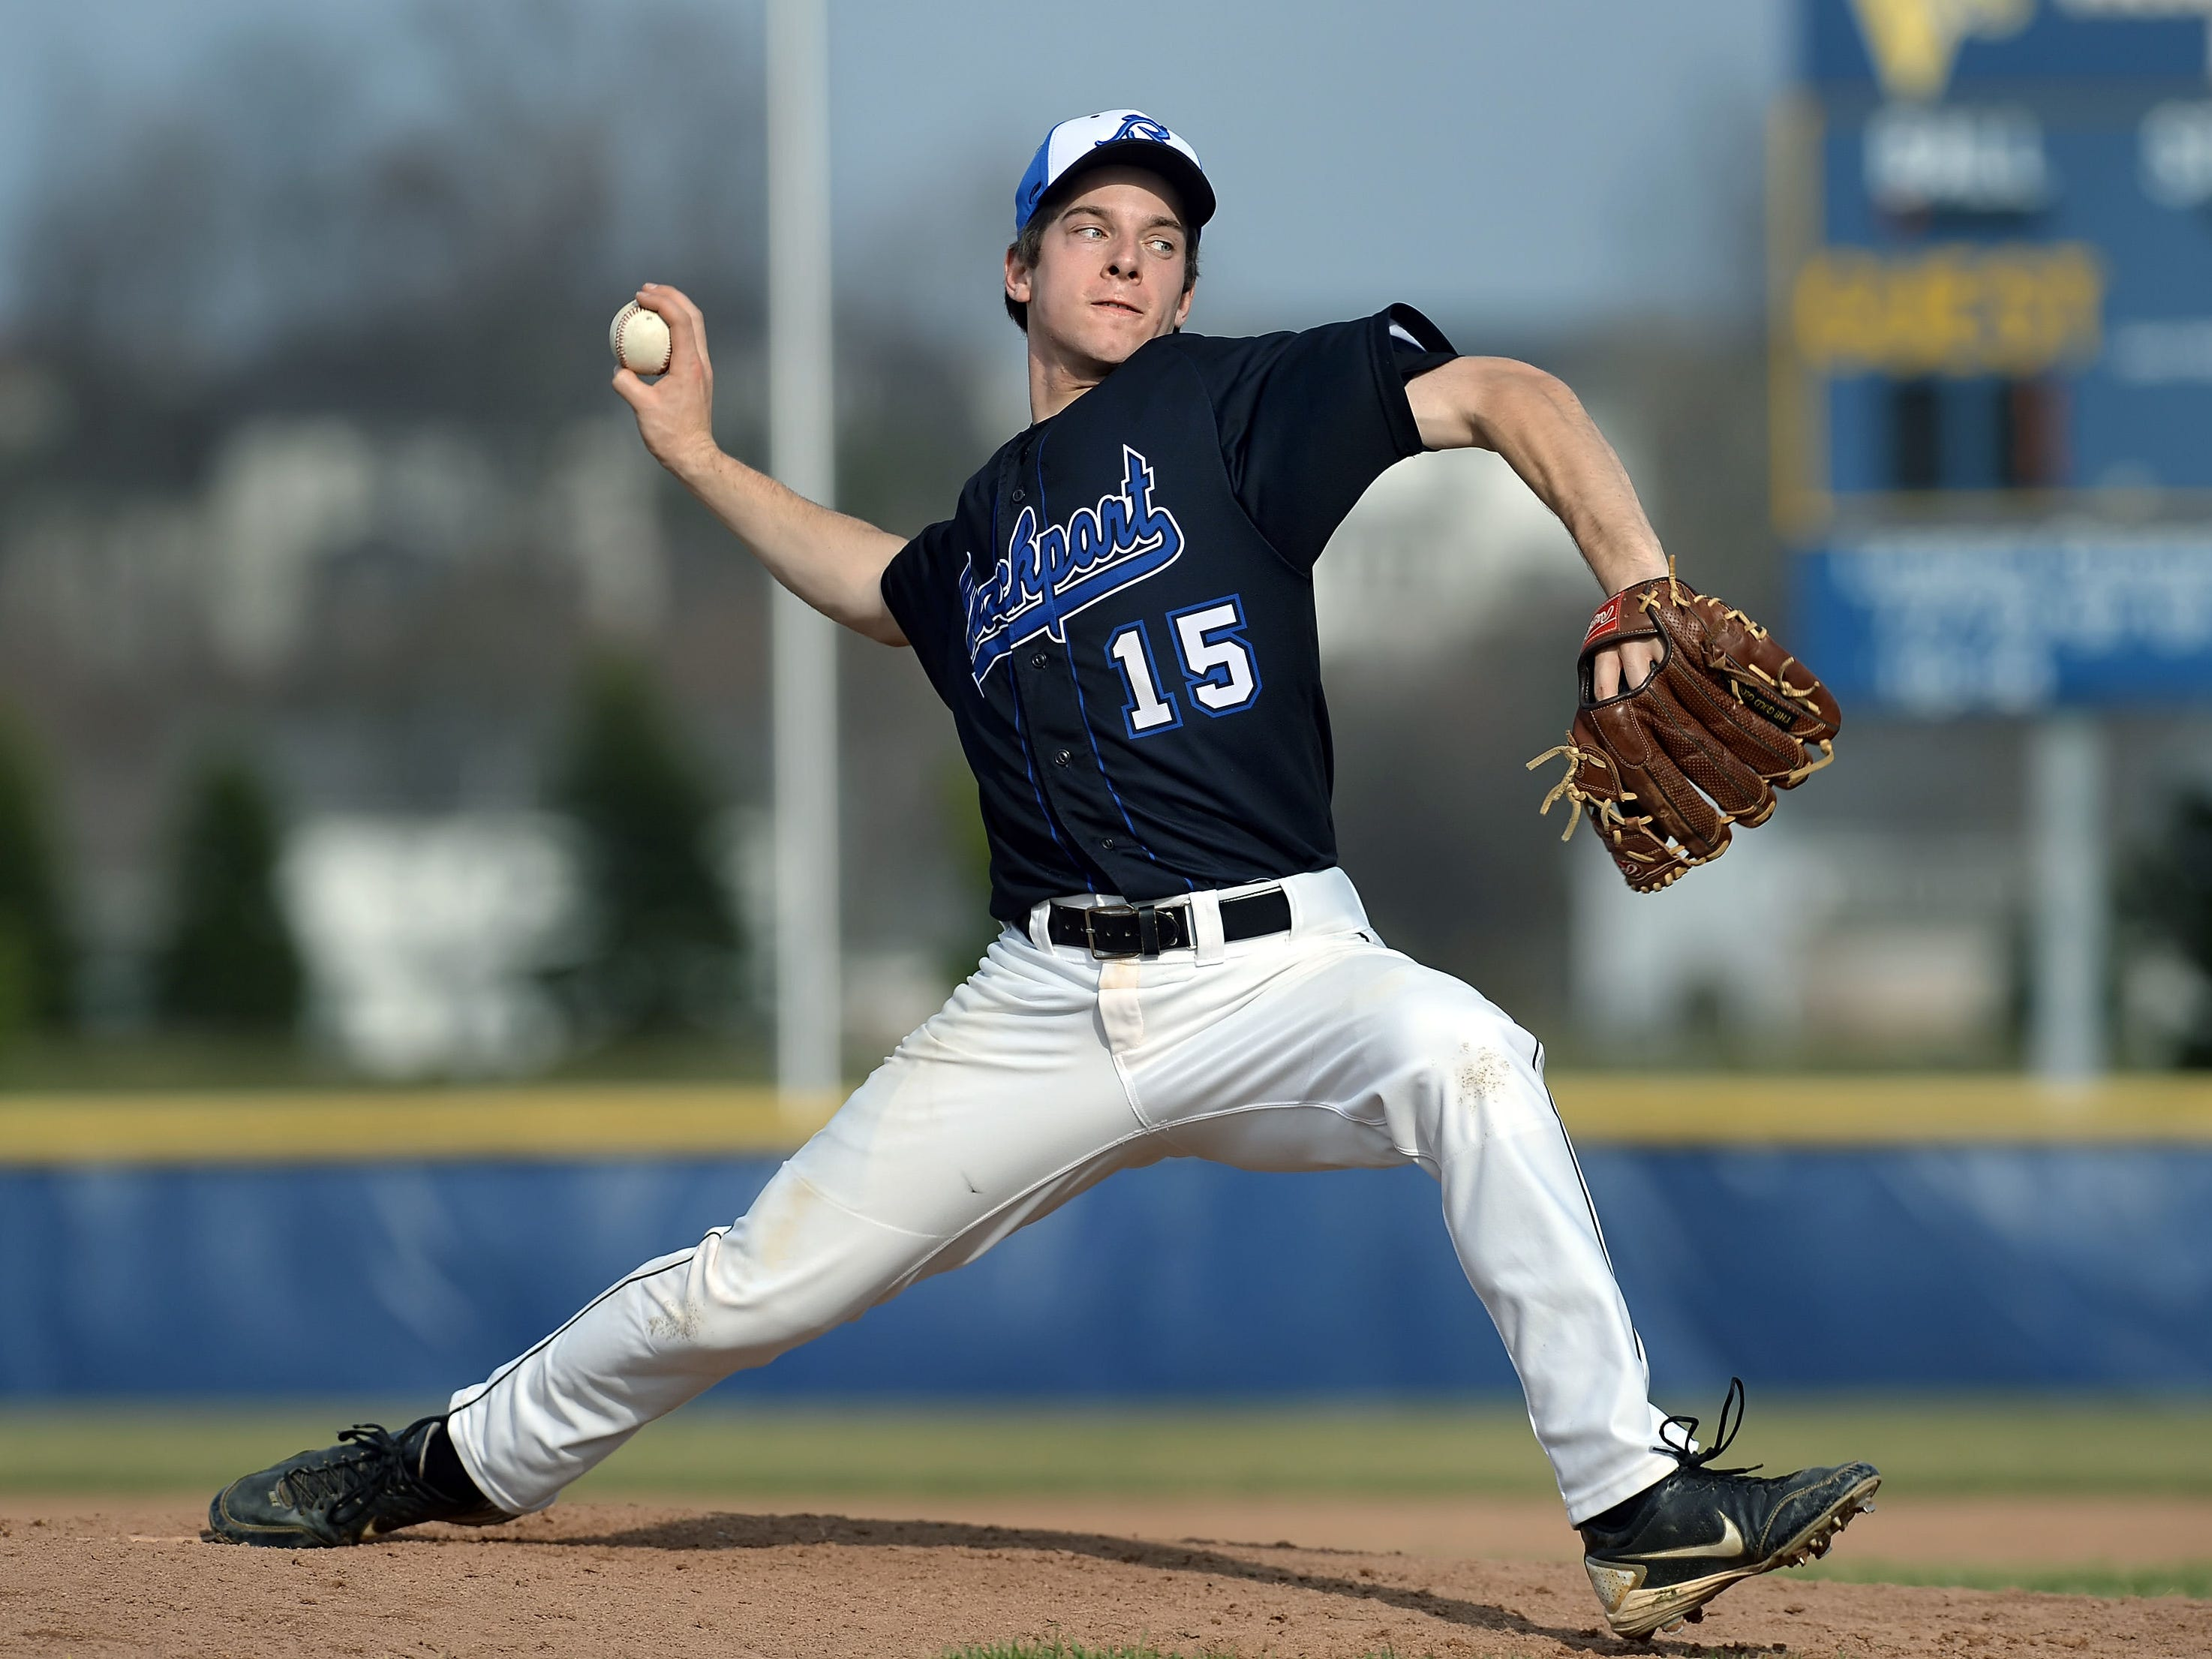 Brockport pitcher Thomas Pauly got the start during a regular season game played at Victor High School on Monday, April 13, 2015. Brockport beat Victor 5-3.